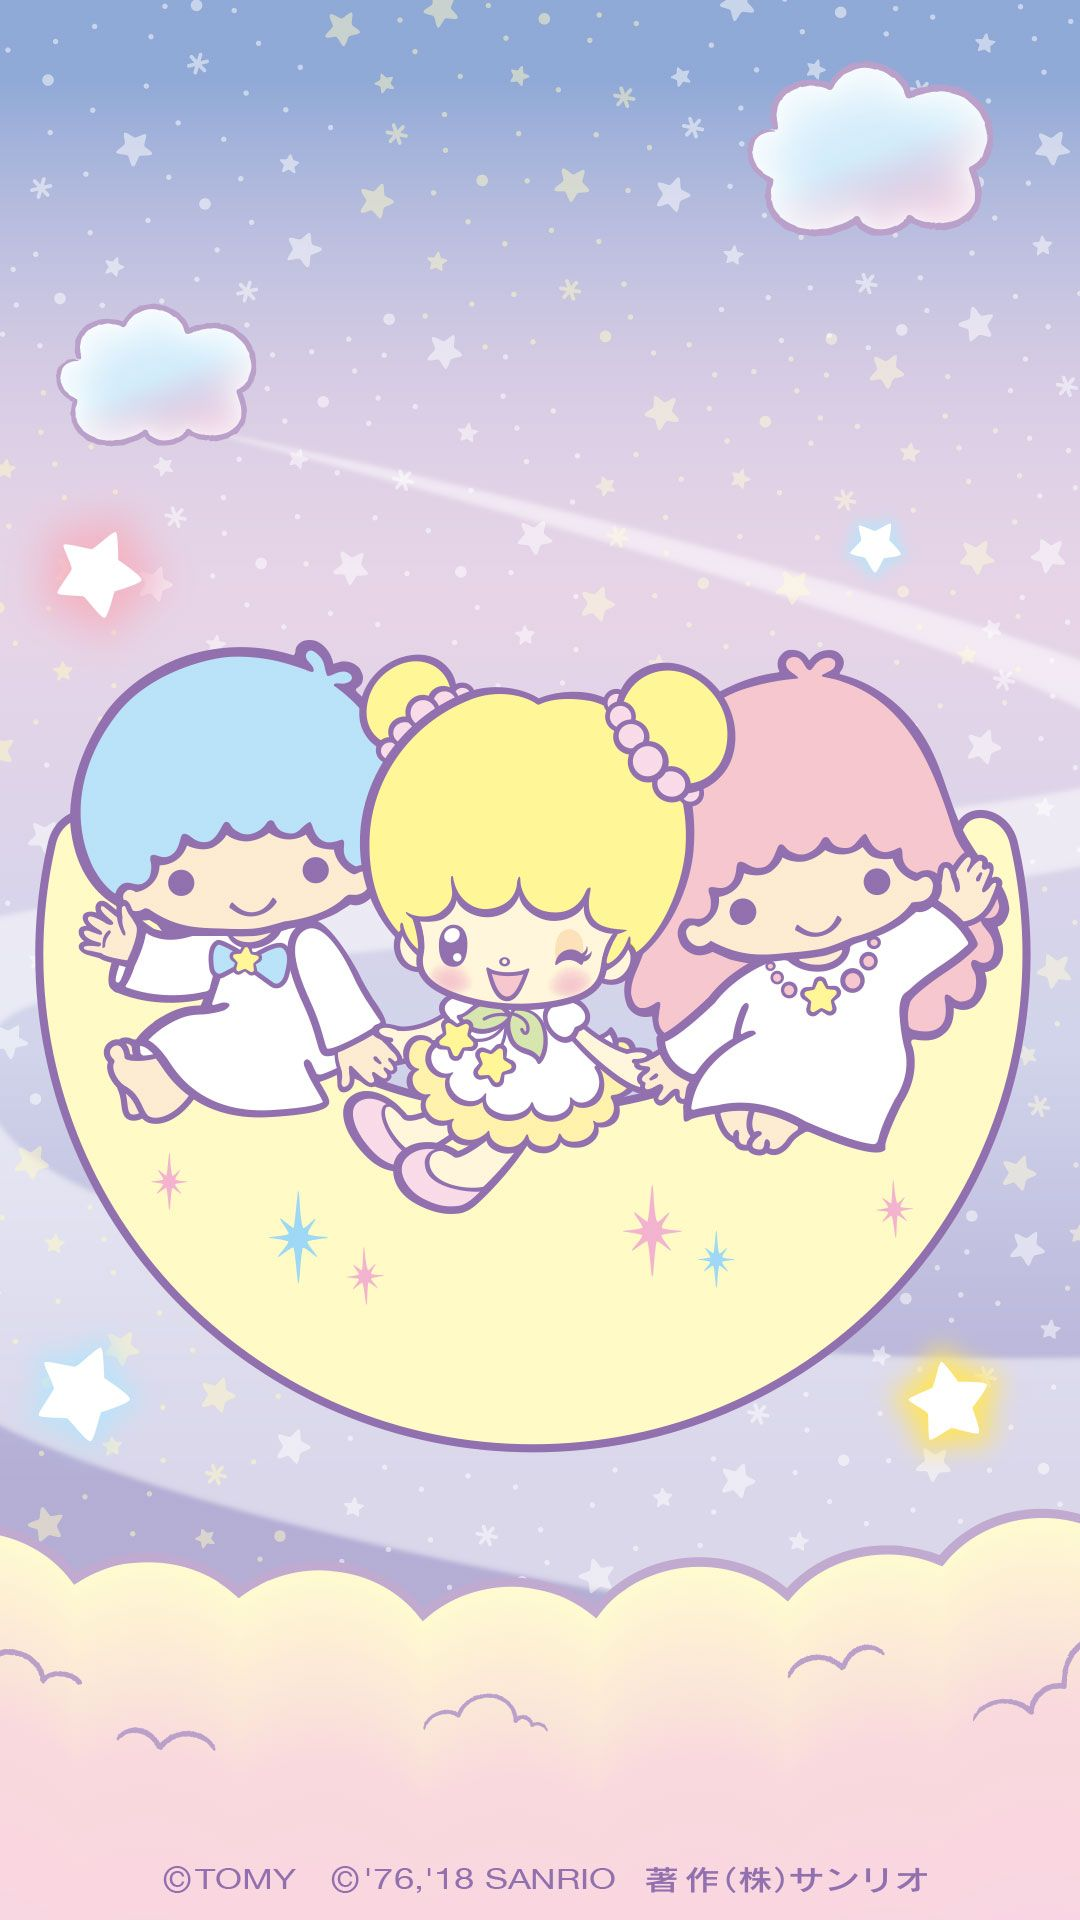 Little Twin Stars Wallpaper 2018 五月桌布 日本官方Twitter